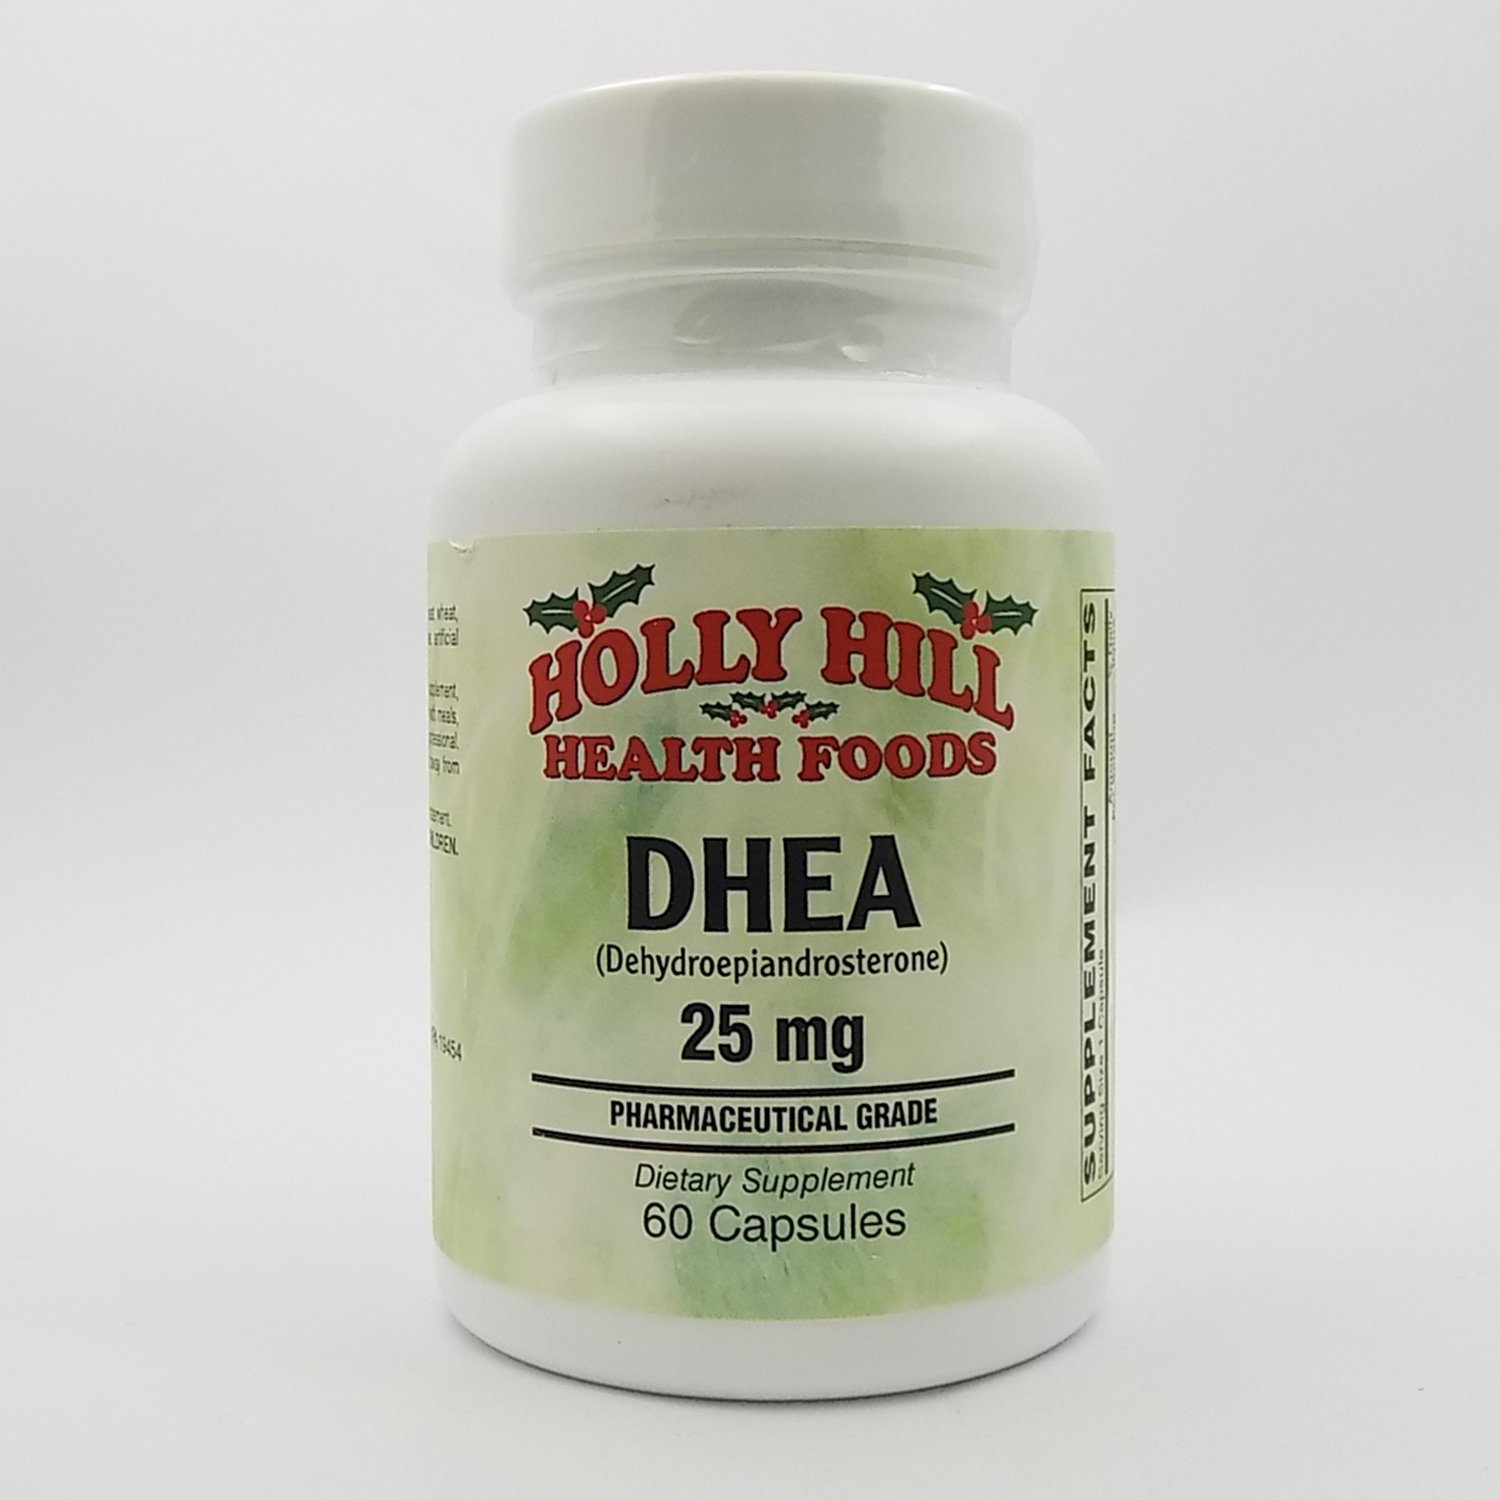 Holly Hill Health Foods, DHEA 25 MG (Pharmaceutical Grade), 60 Capsules